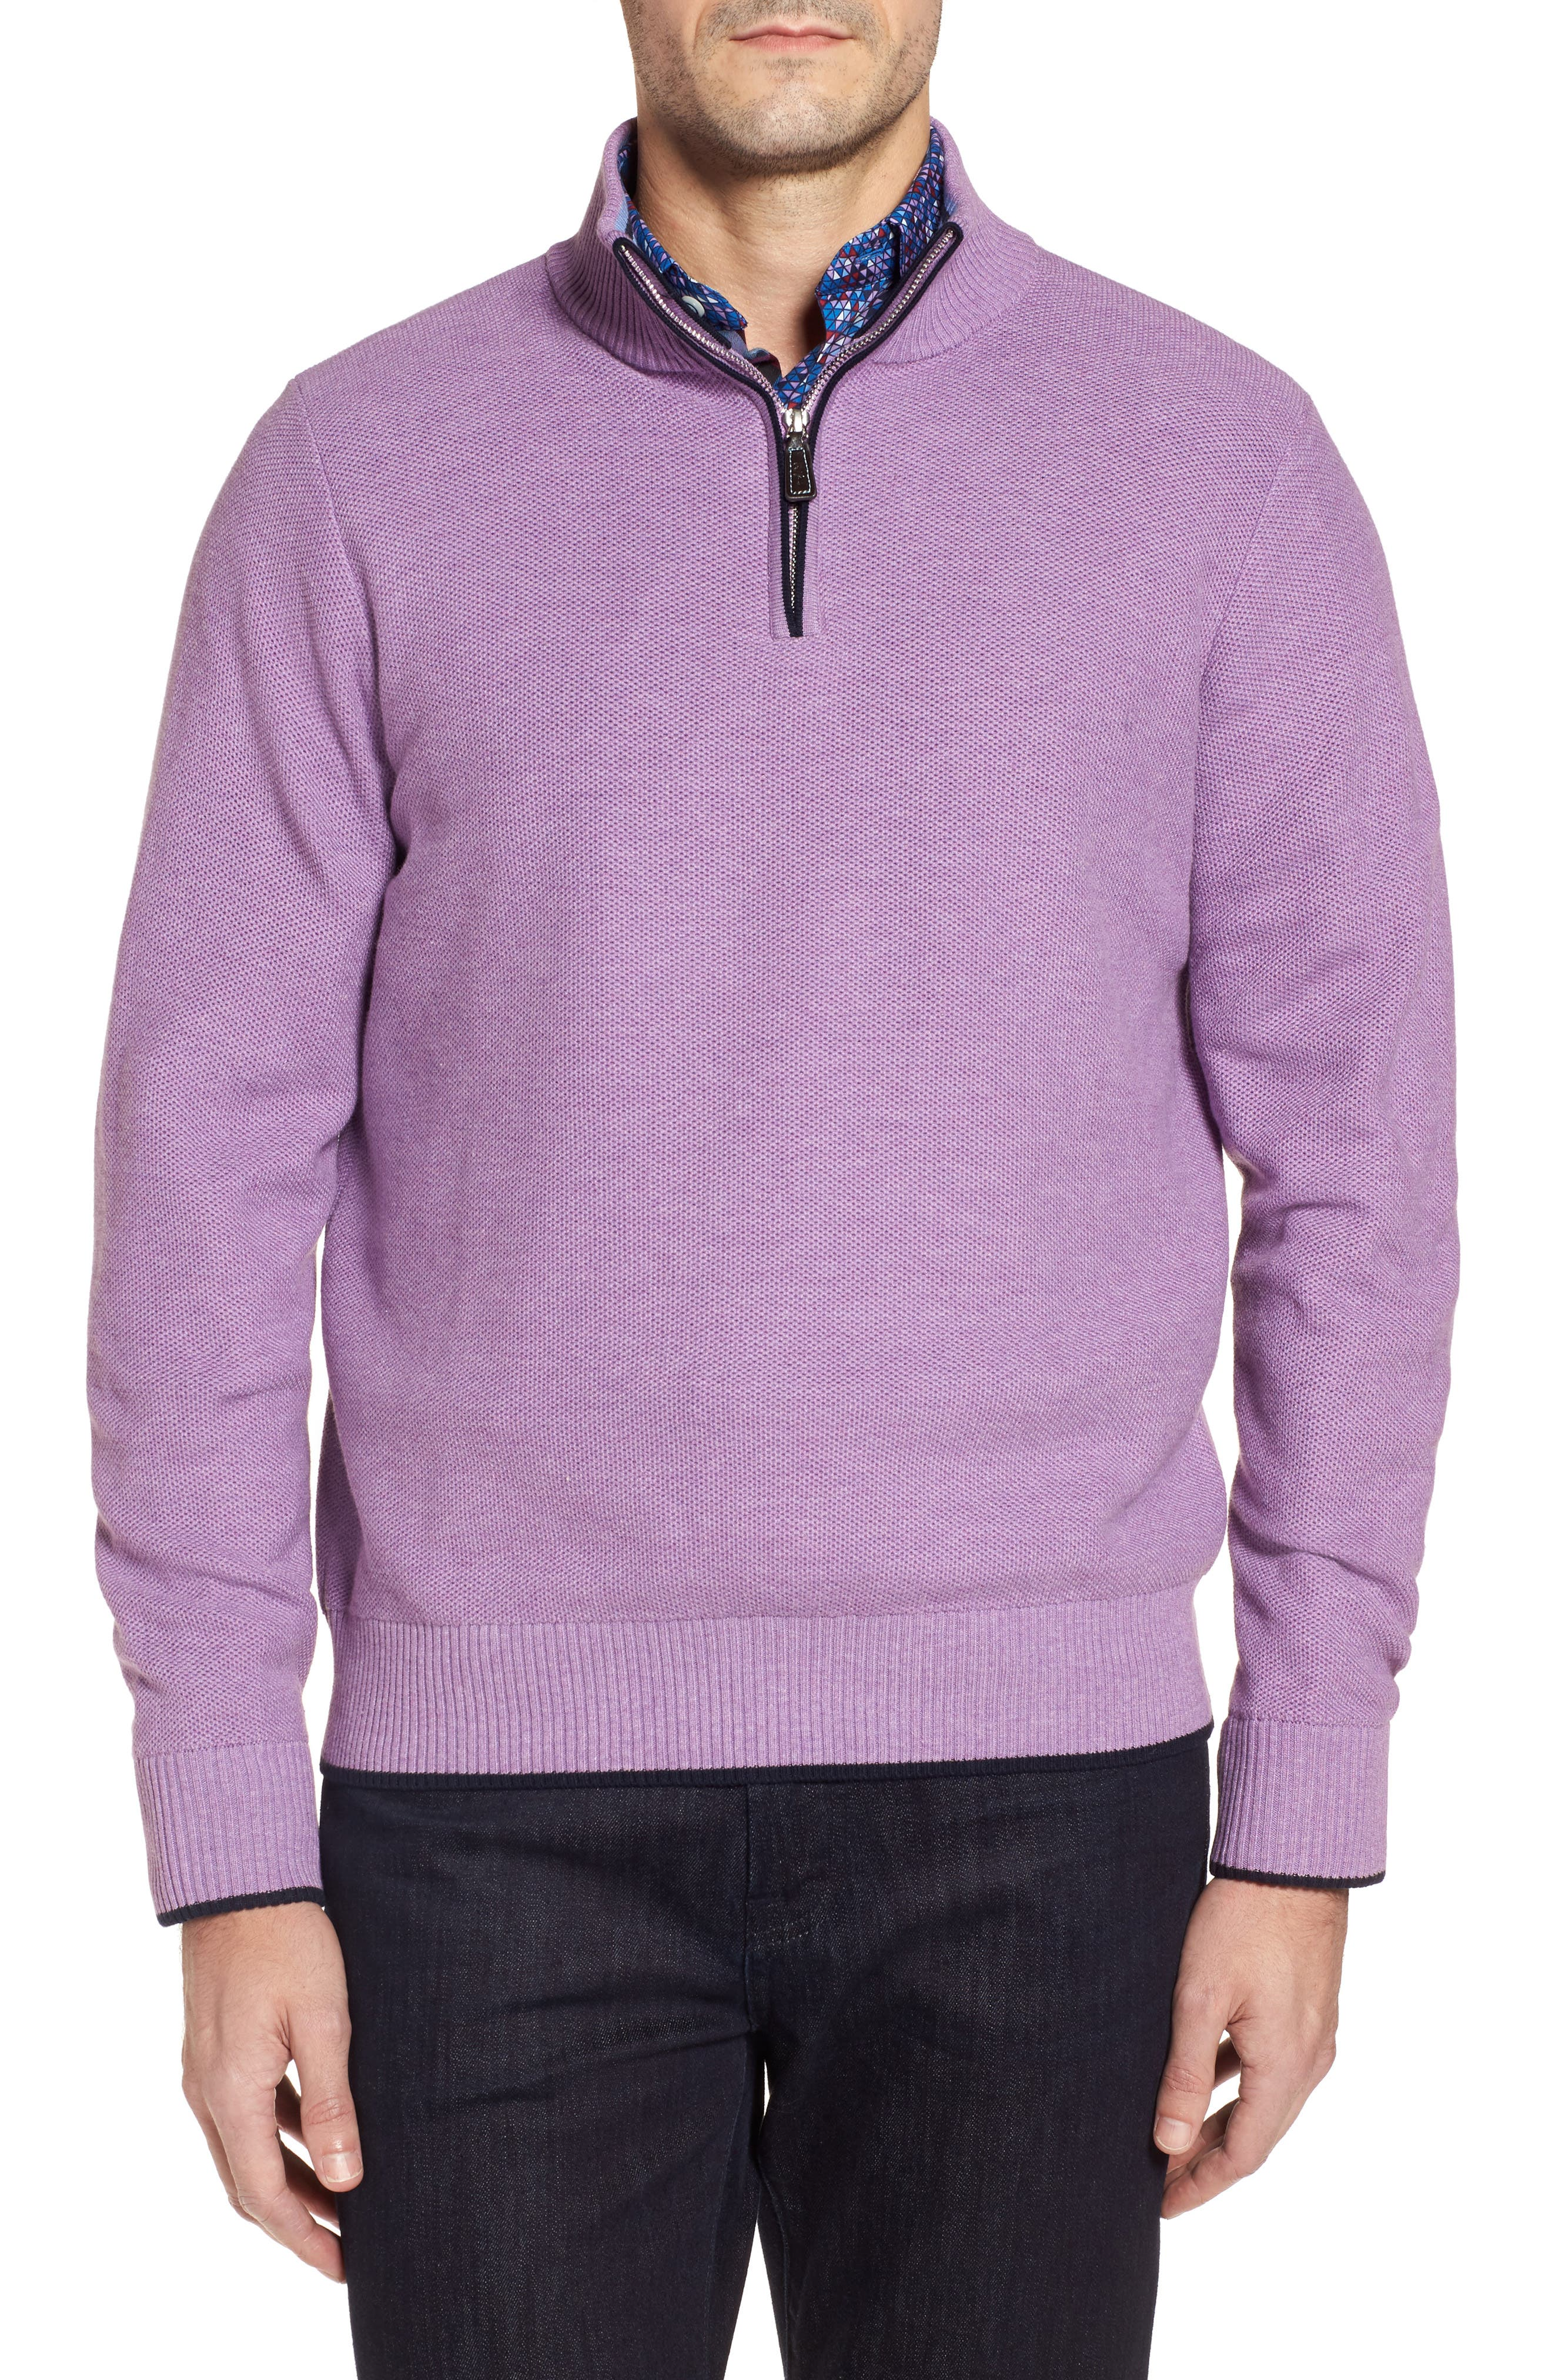 Ossun Tipped Quarter Zip Sweater,                         Main,                         color, Lavender